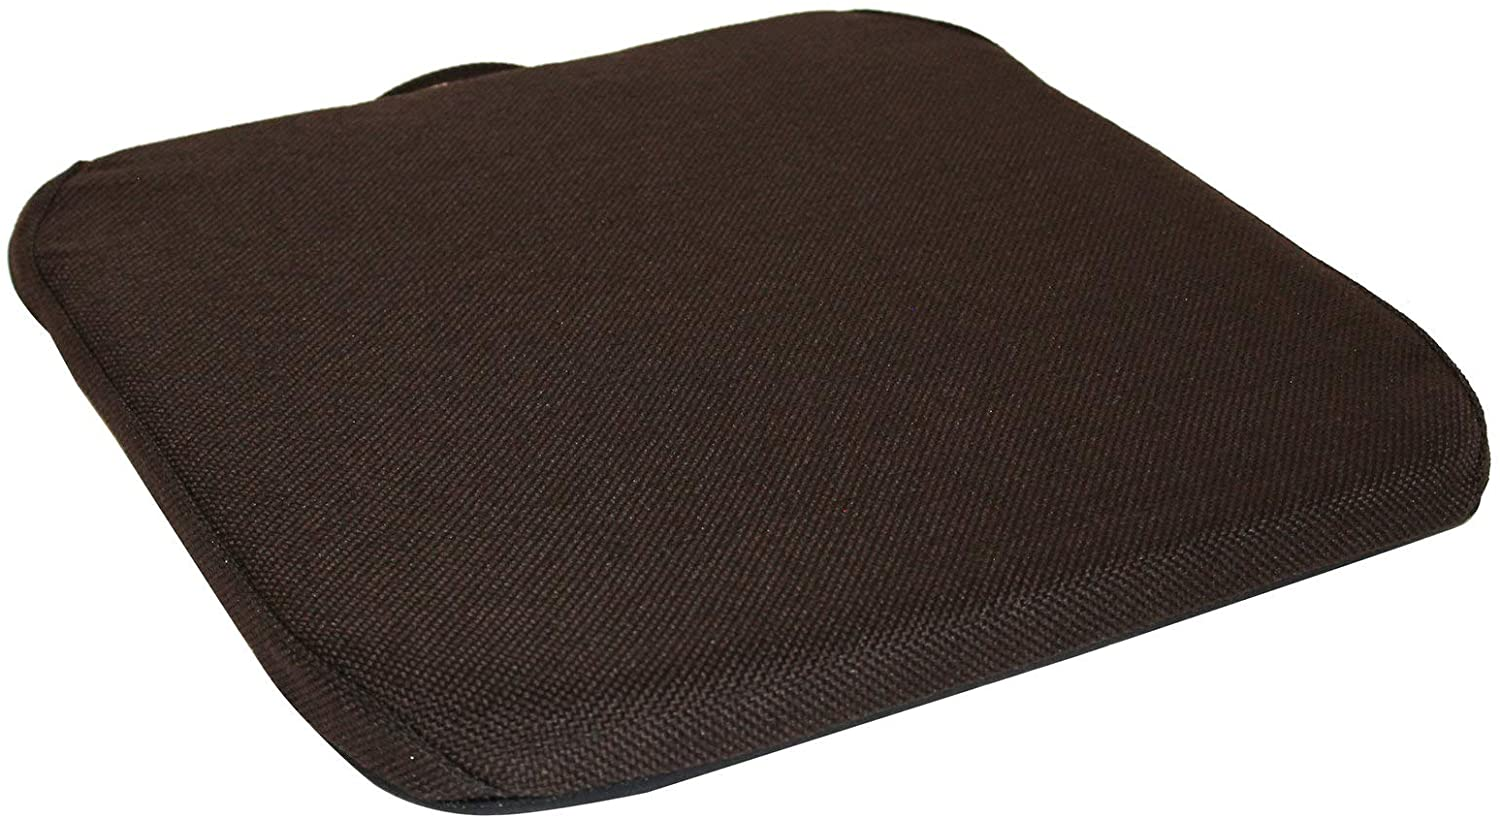 Q QUALITY BRAND COMPANY McCarty's Q-RSCCF-BRN 14 in. Wide Memory Foam Sacro-Ease Bottom Seat Cushion Support 1x14x16 in. Brown Color